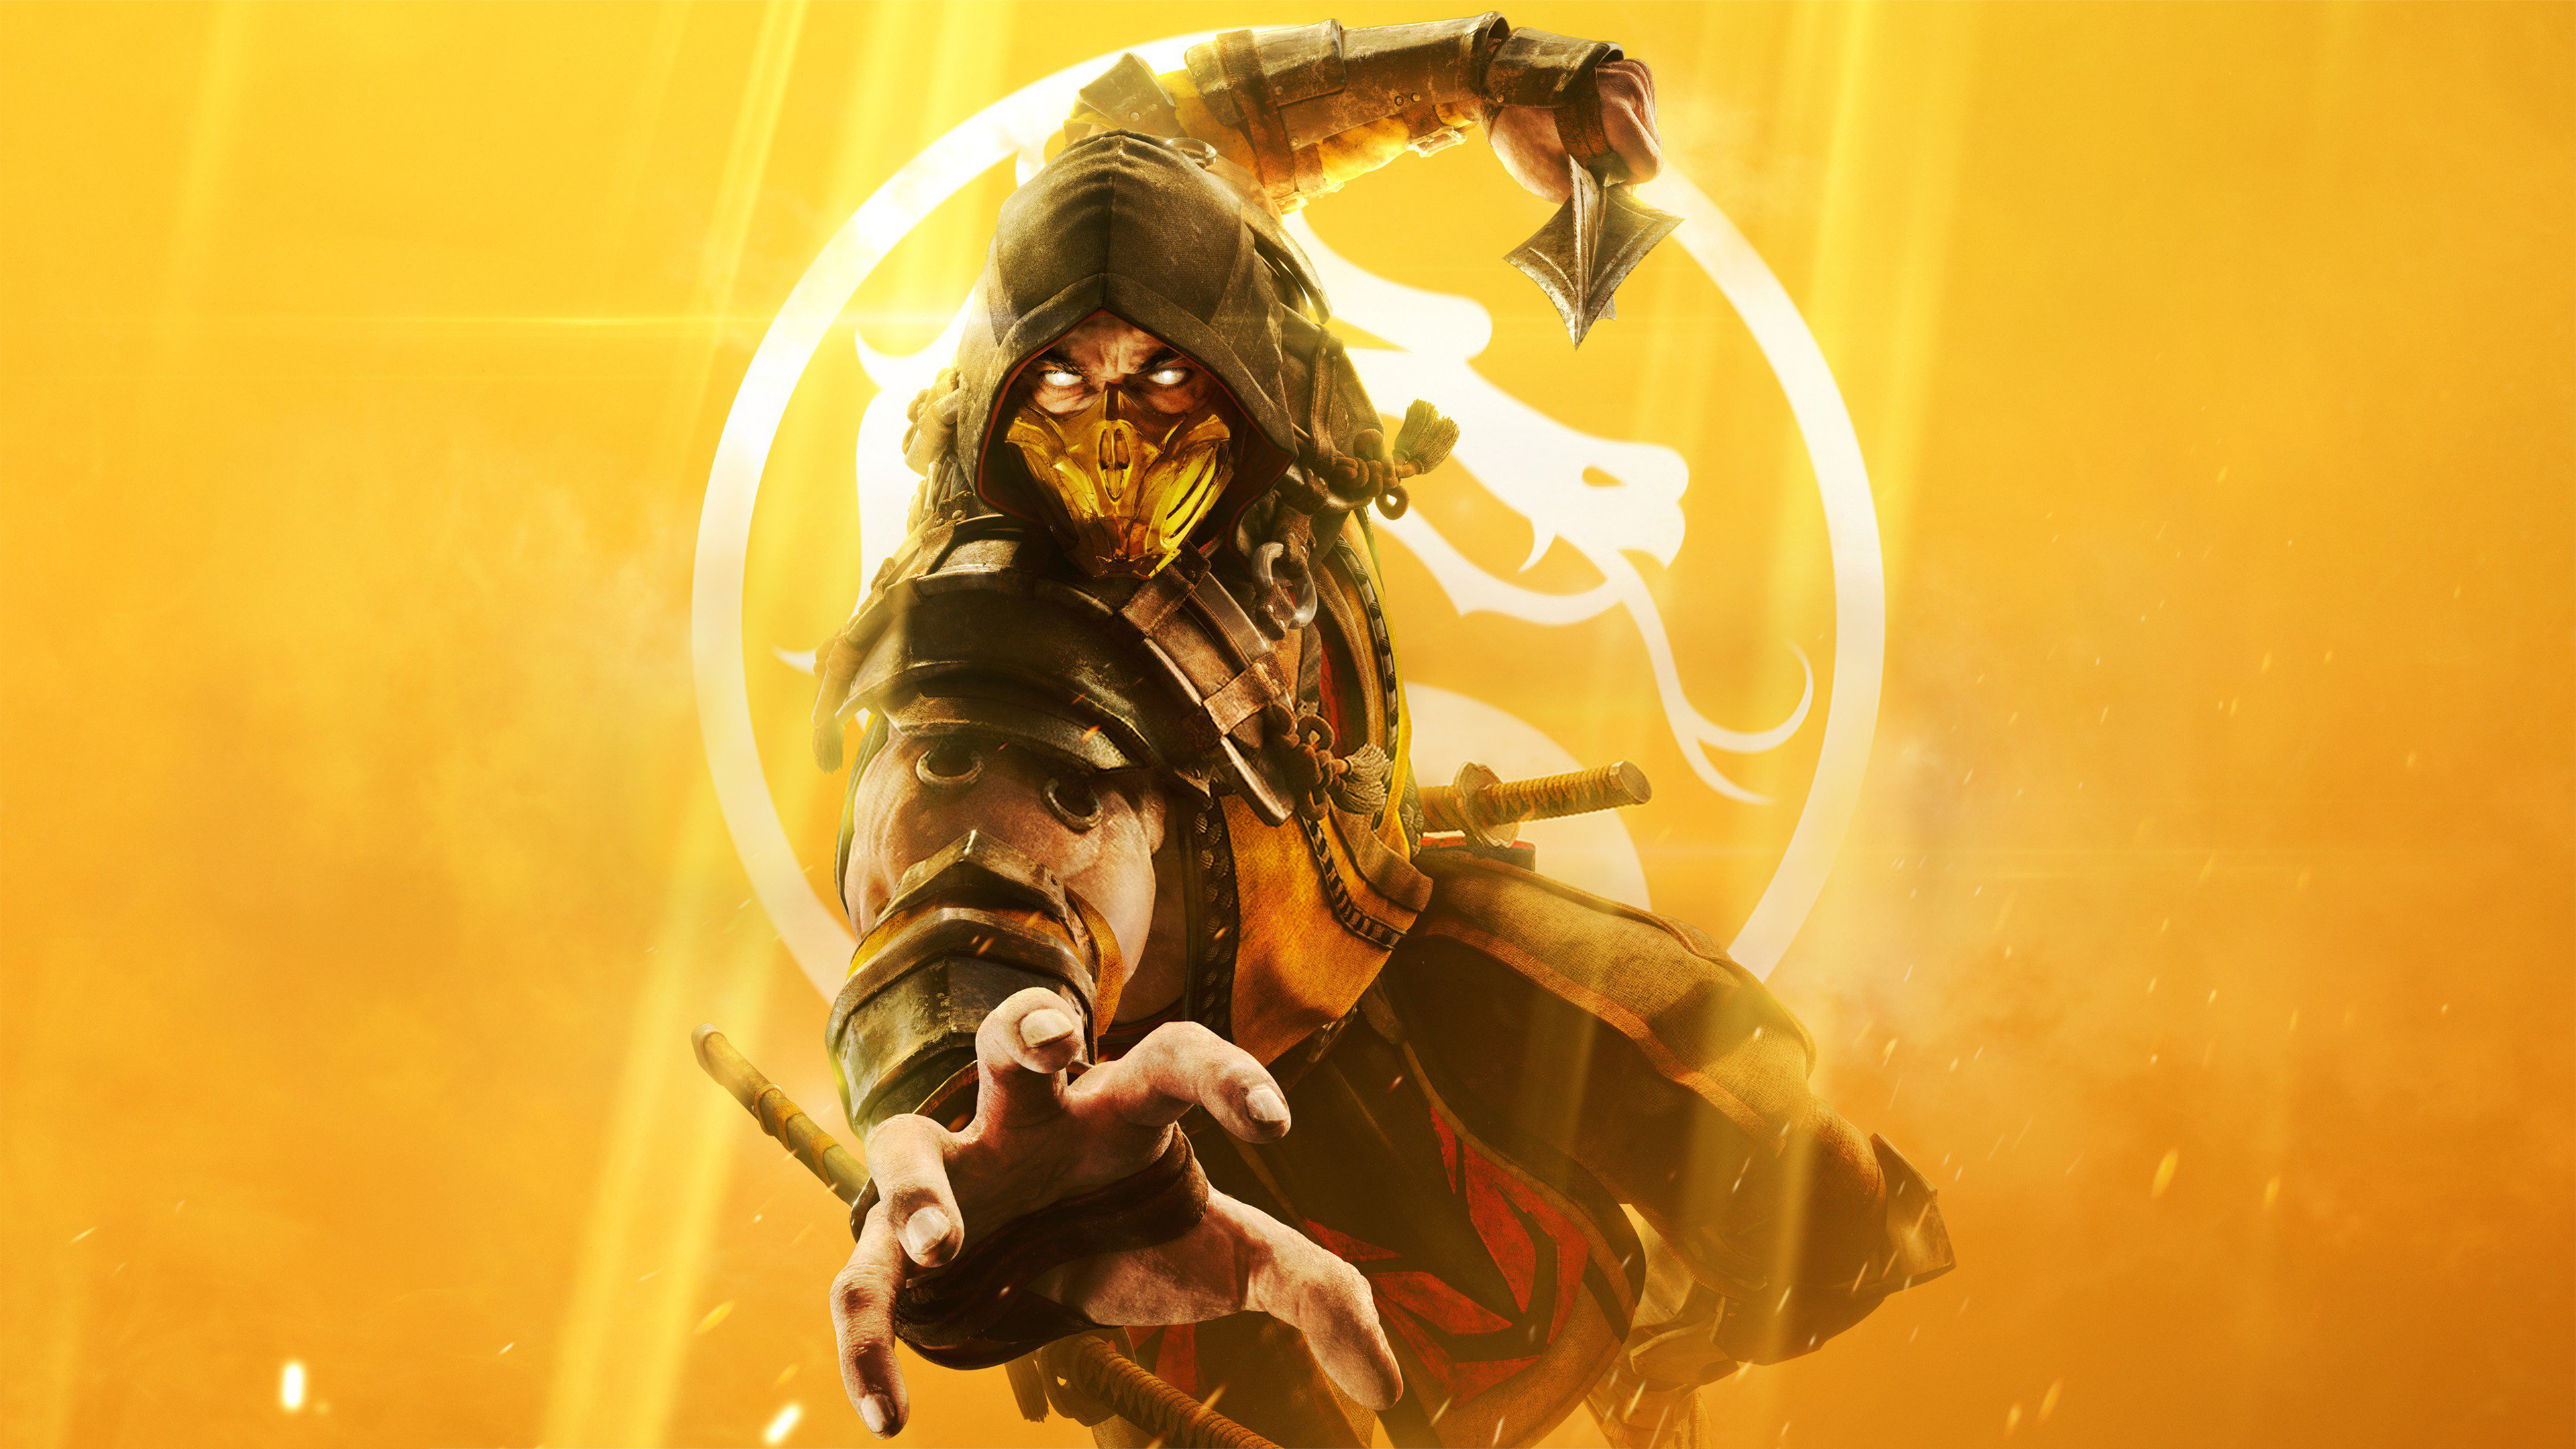 Wallpaper 4k Mortal Kombat 11 4k 2019 Games Wallpapers 4k